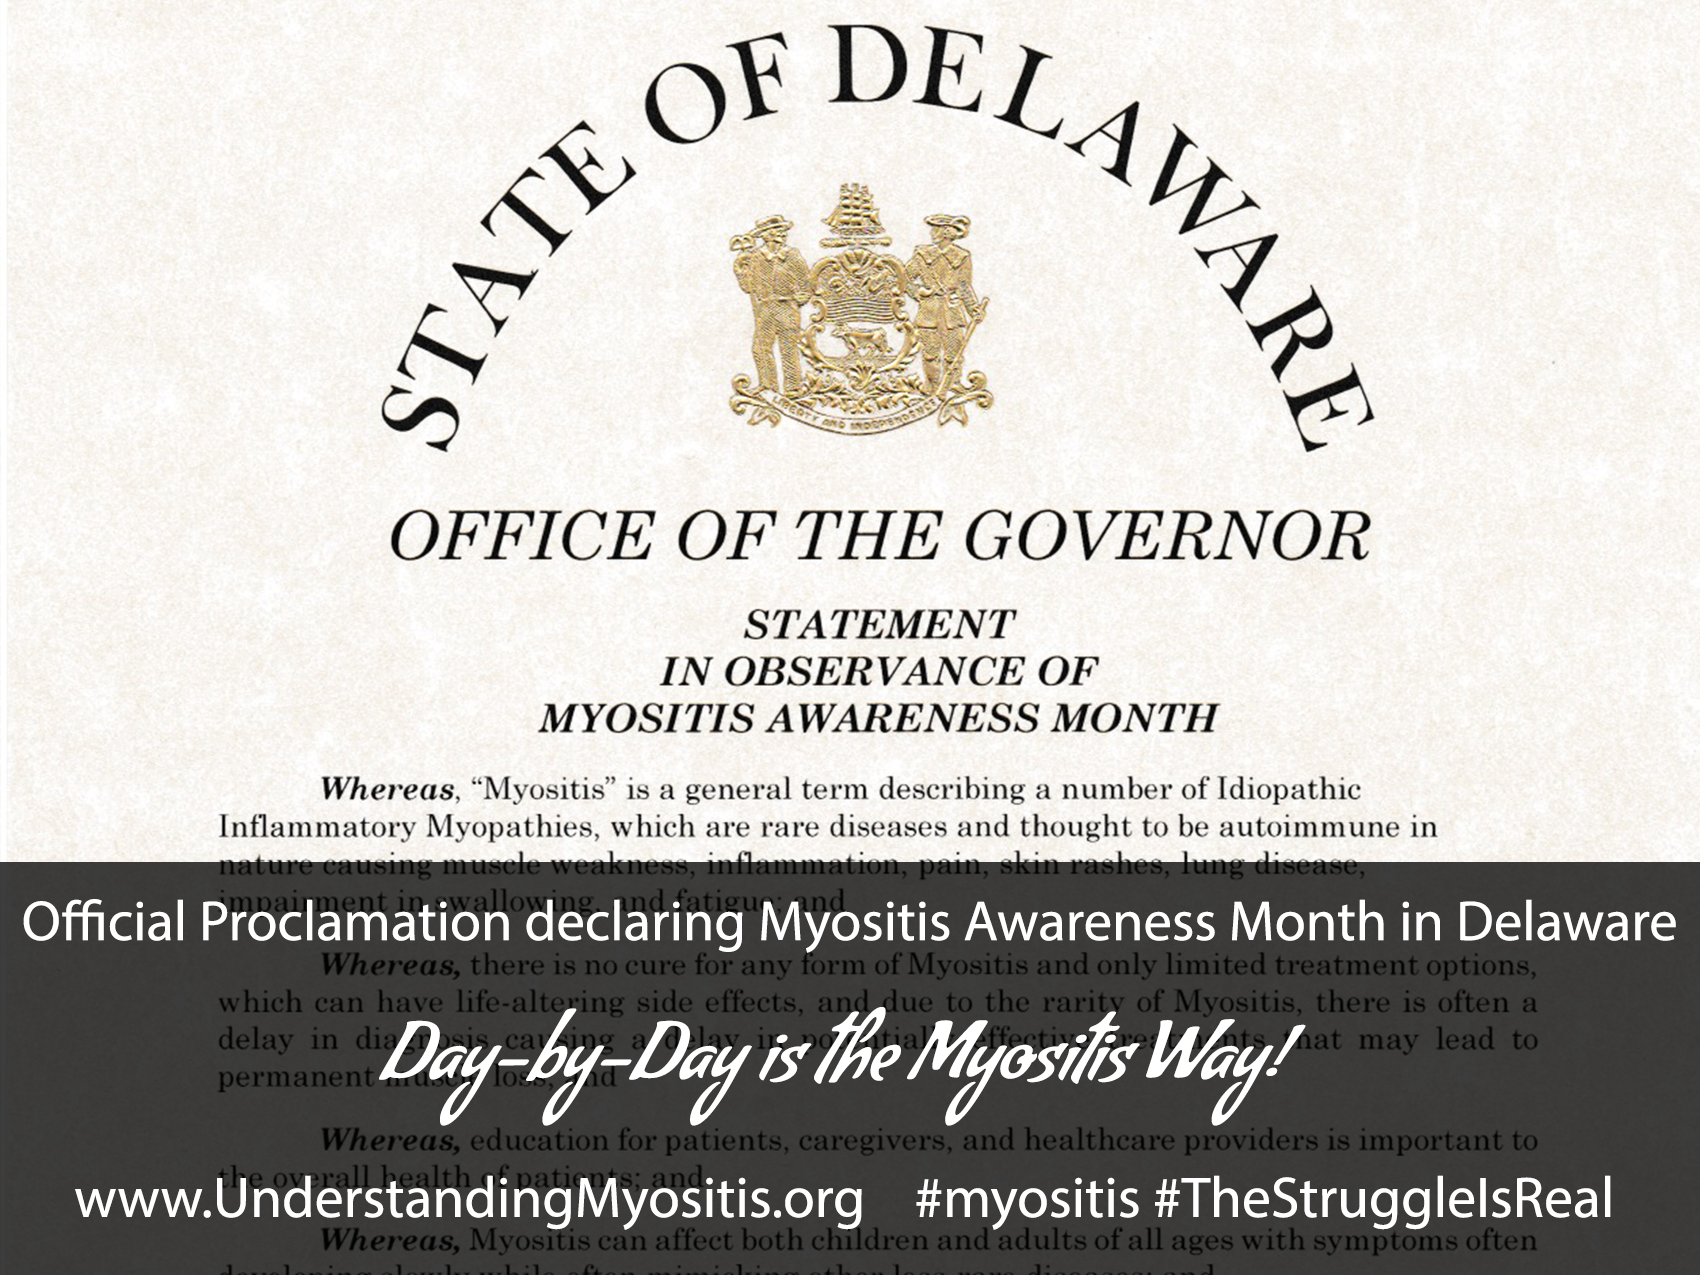 Delaware declares September 2015 Myositis Awareness Month